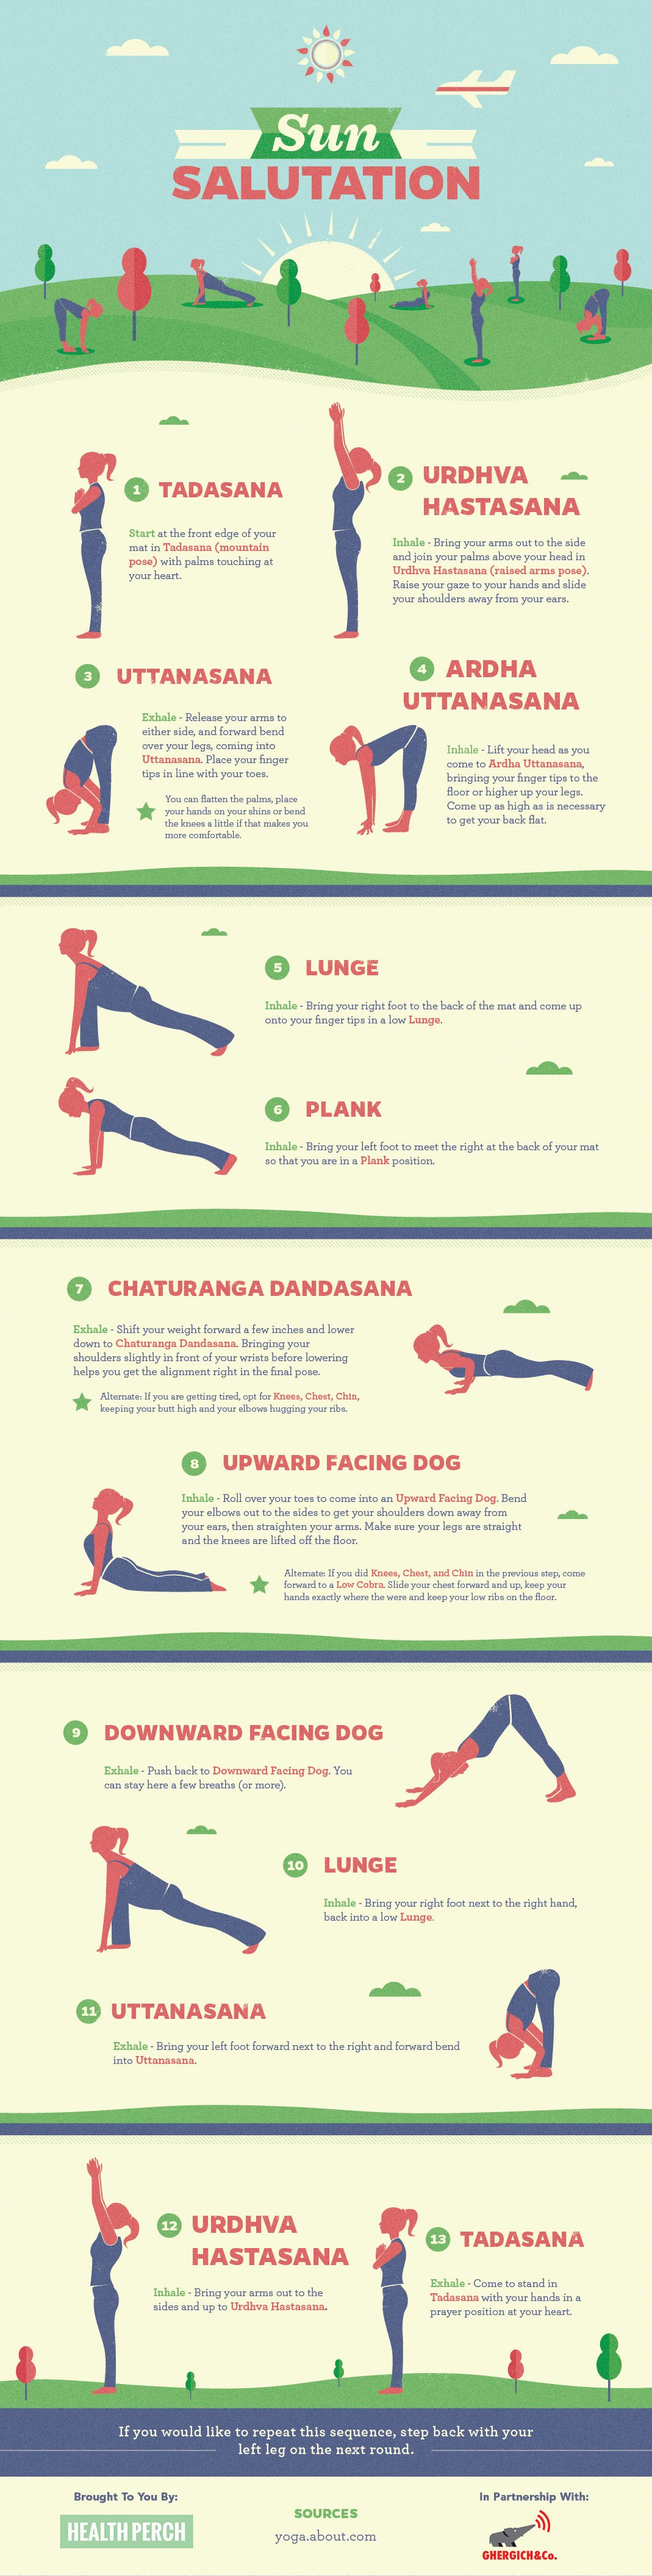 A Guide To Sun Salutation - Infographic